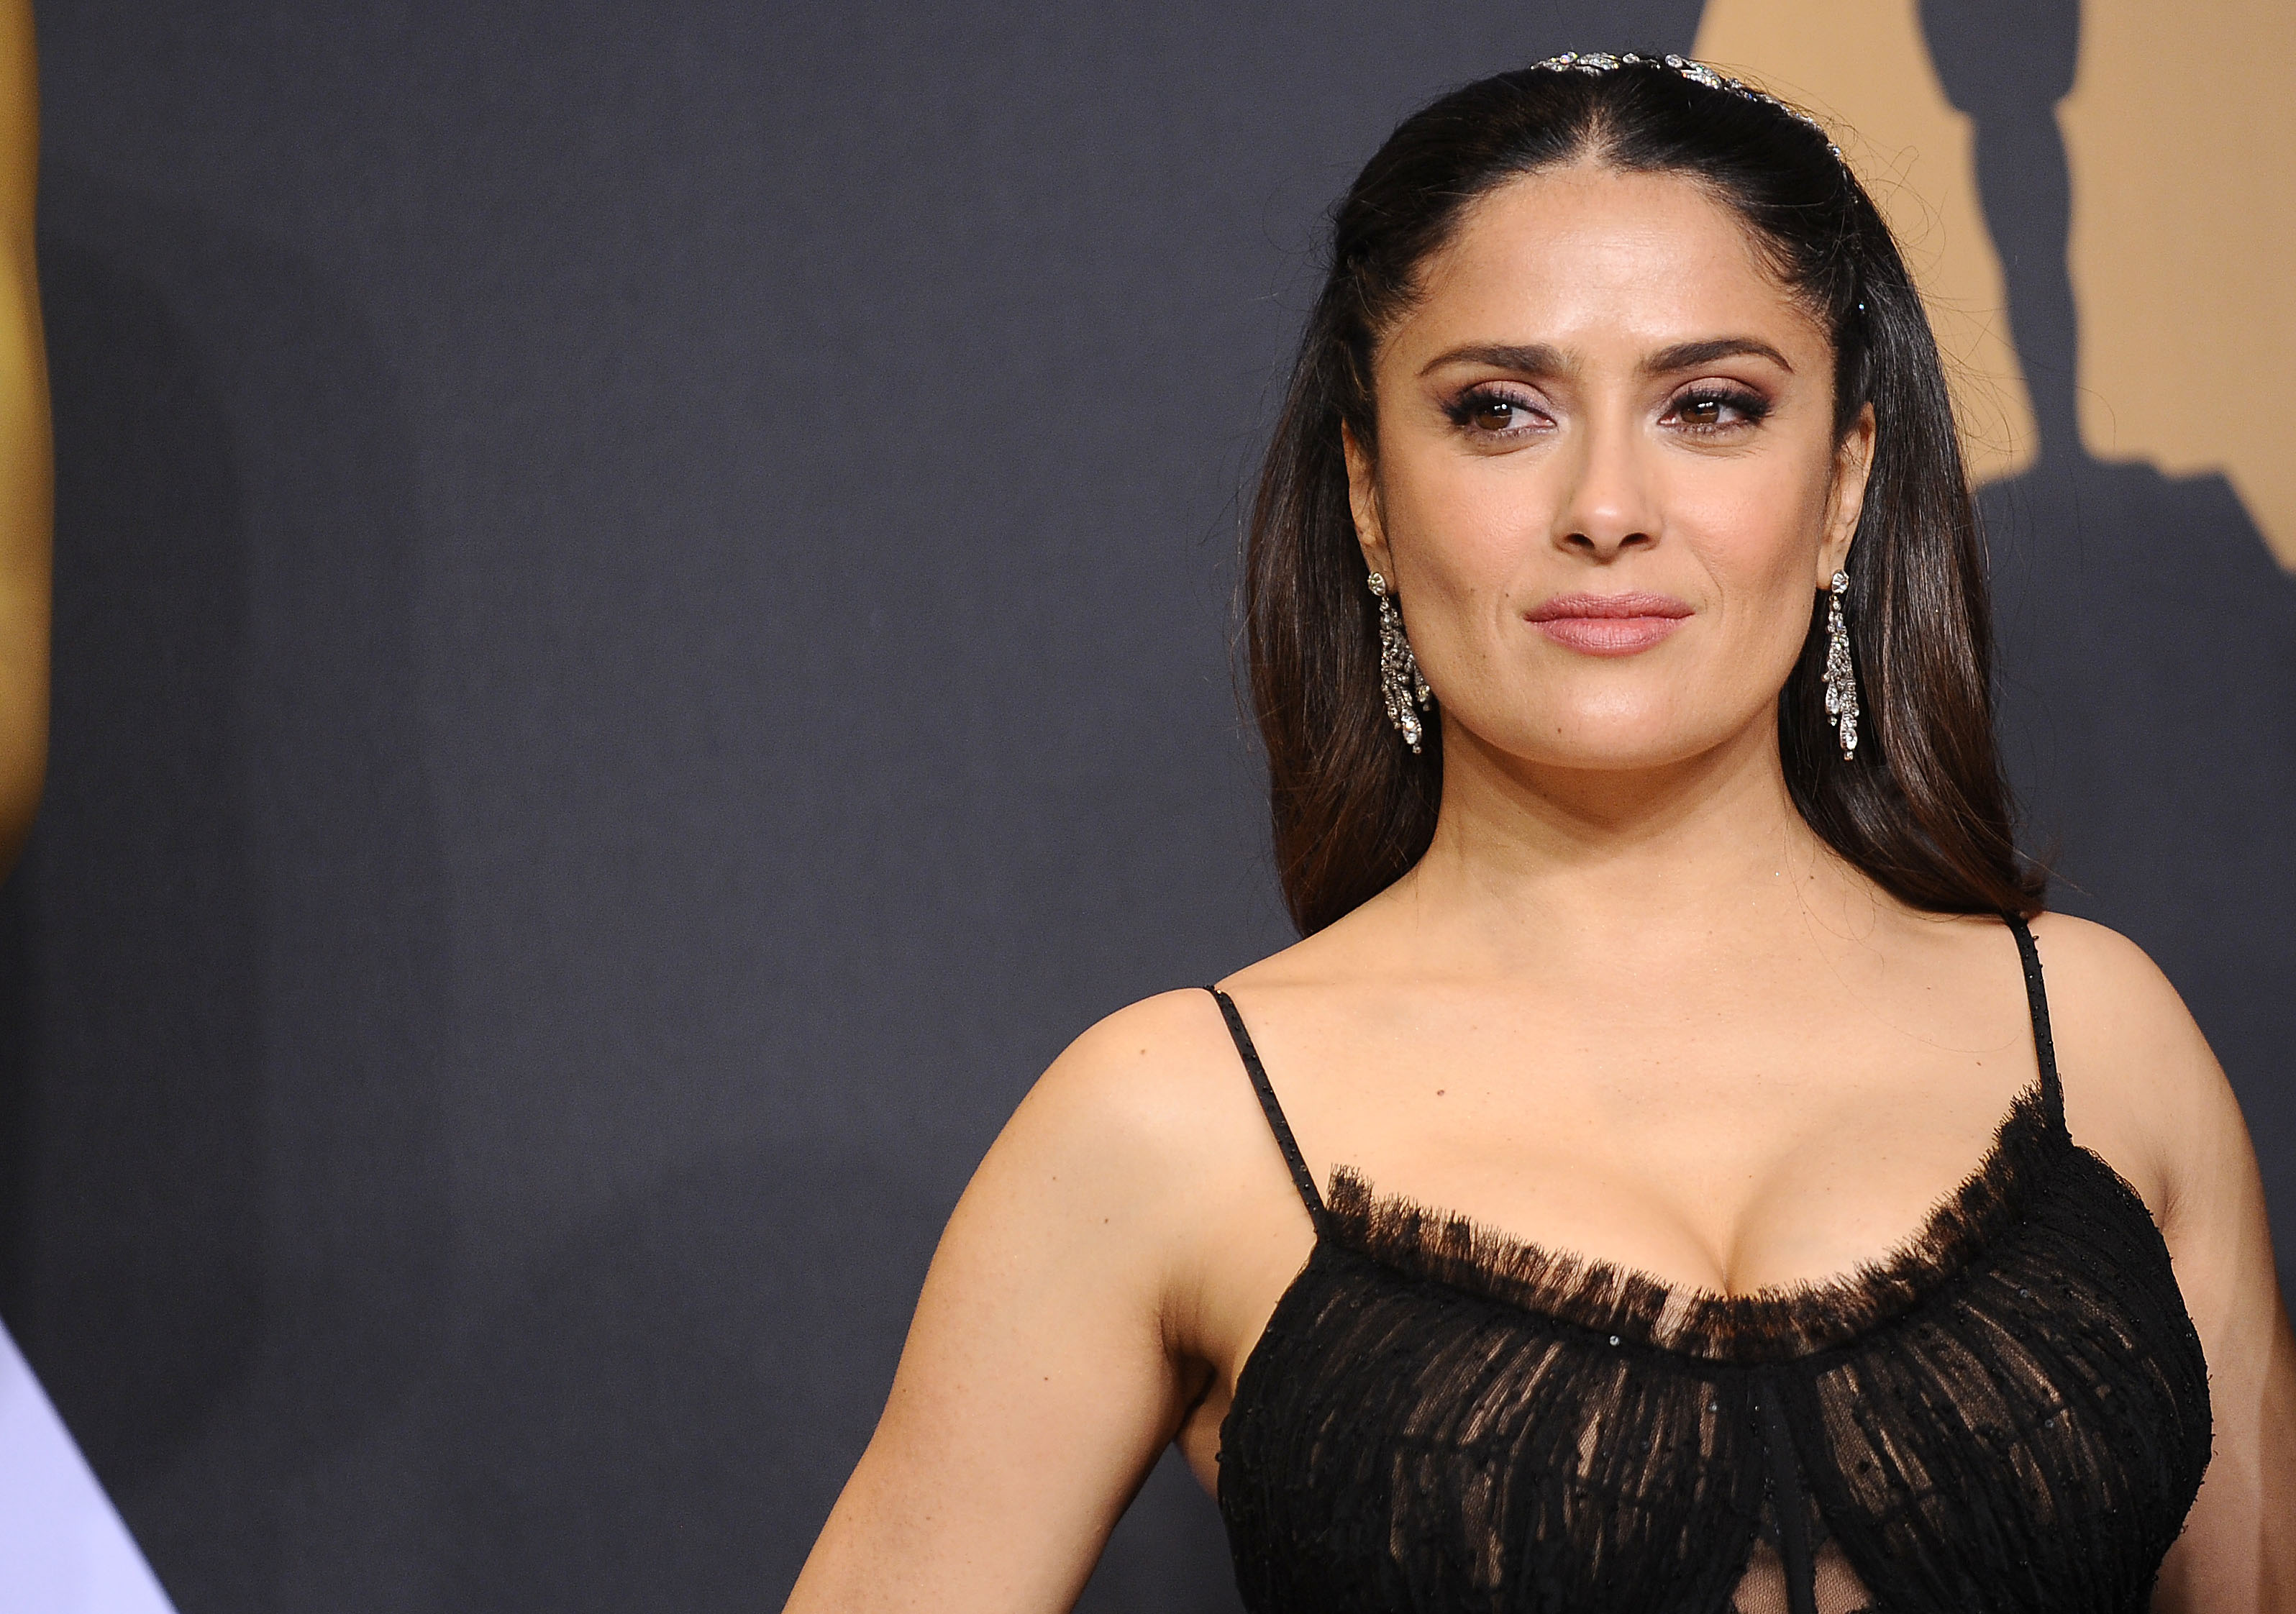 HOLLYWOOD, CA - FEBRUARY 26:  Actress Salma Hayek poses in the press room at the 89th annual Academy Awards at Hollywood & Highland Center on February 26, 2017 in Hollywood, California.  (Photo by Jason LaVeris/FilmMagic)